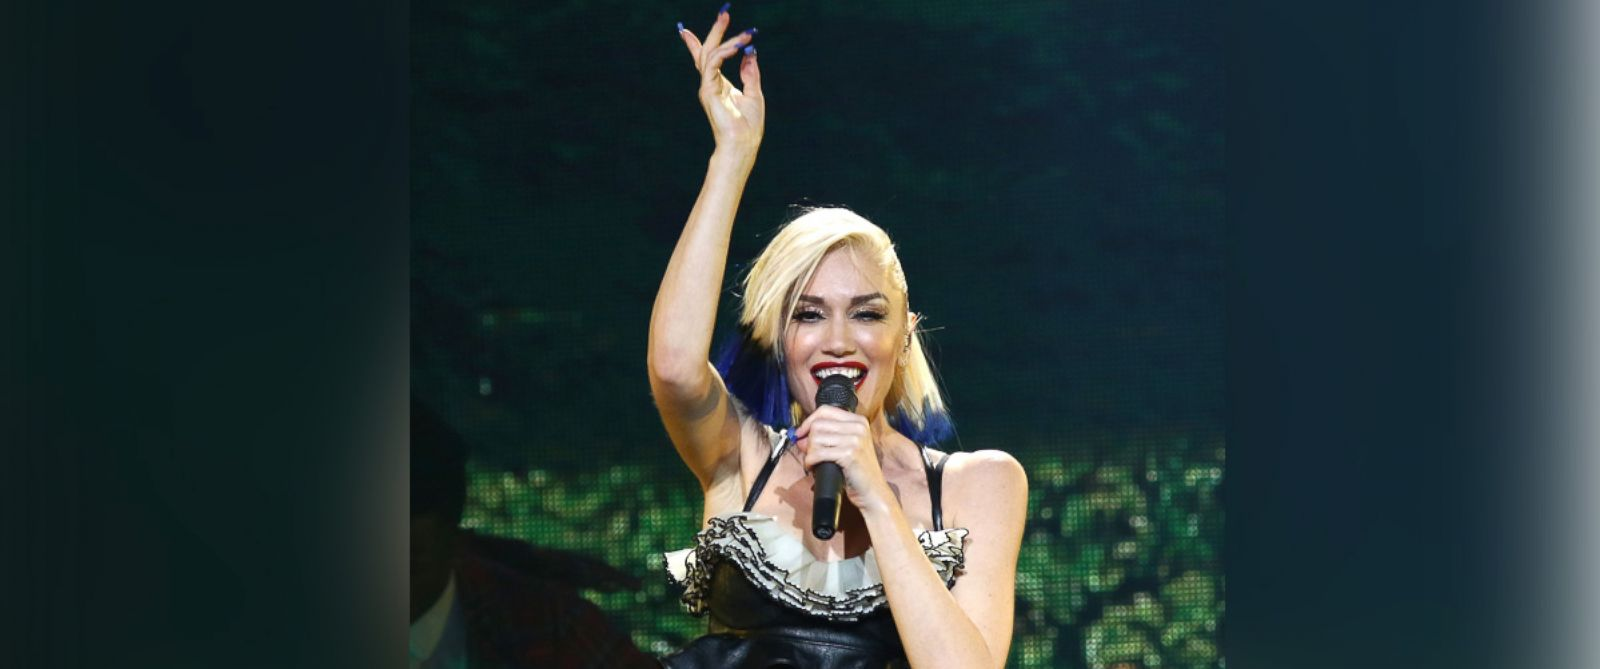 PHOTO: Gwen Stefani performs during an exclusive concert for MasterCard cardholders at the Hammerstein Ballroom on Oct. 17, 2015 in New York City.